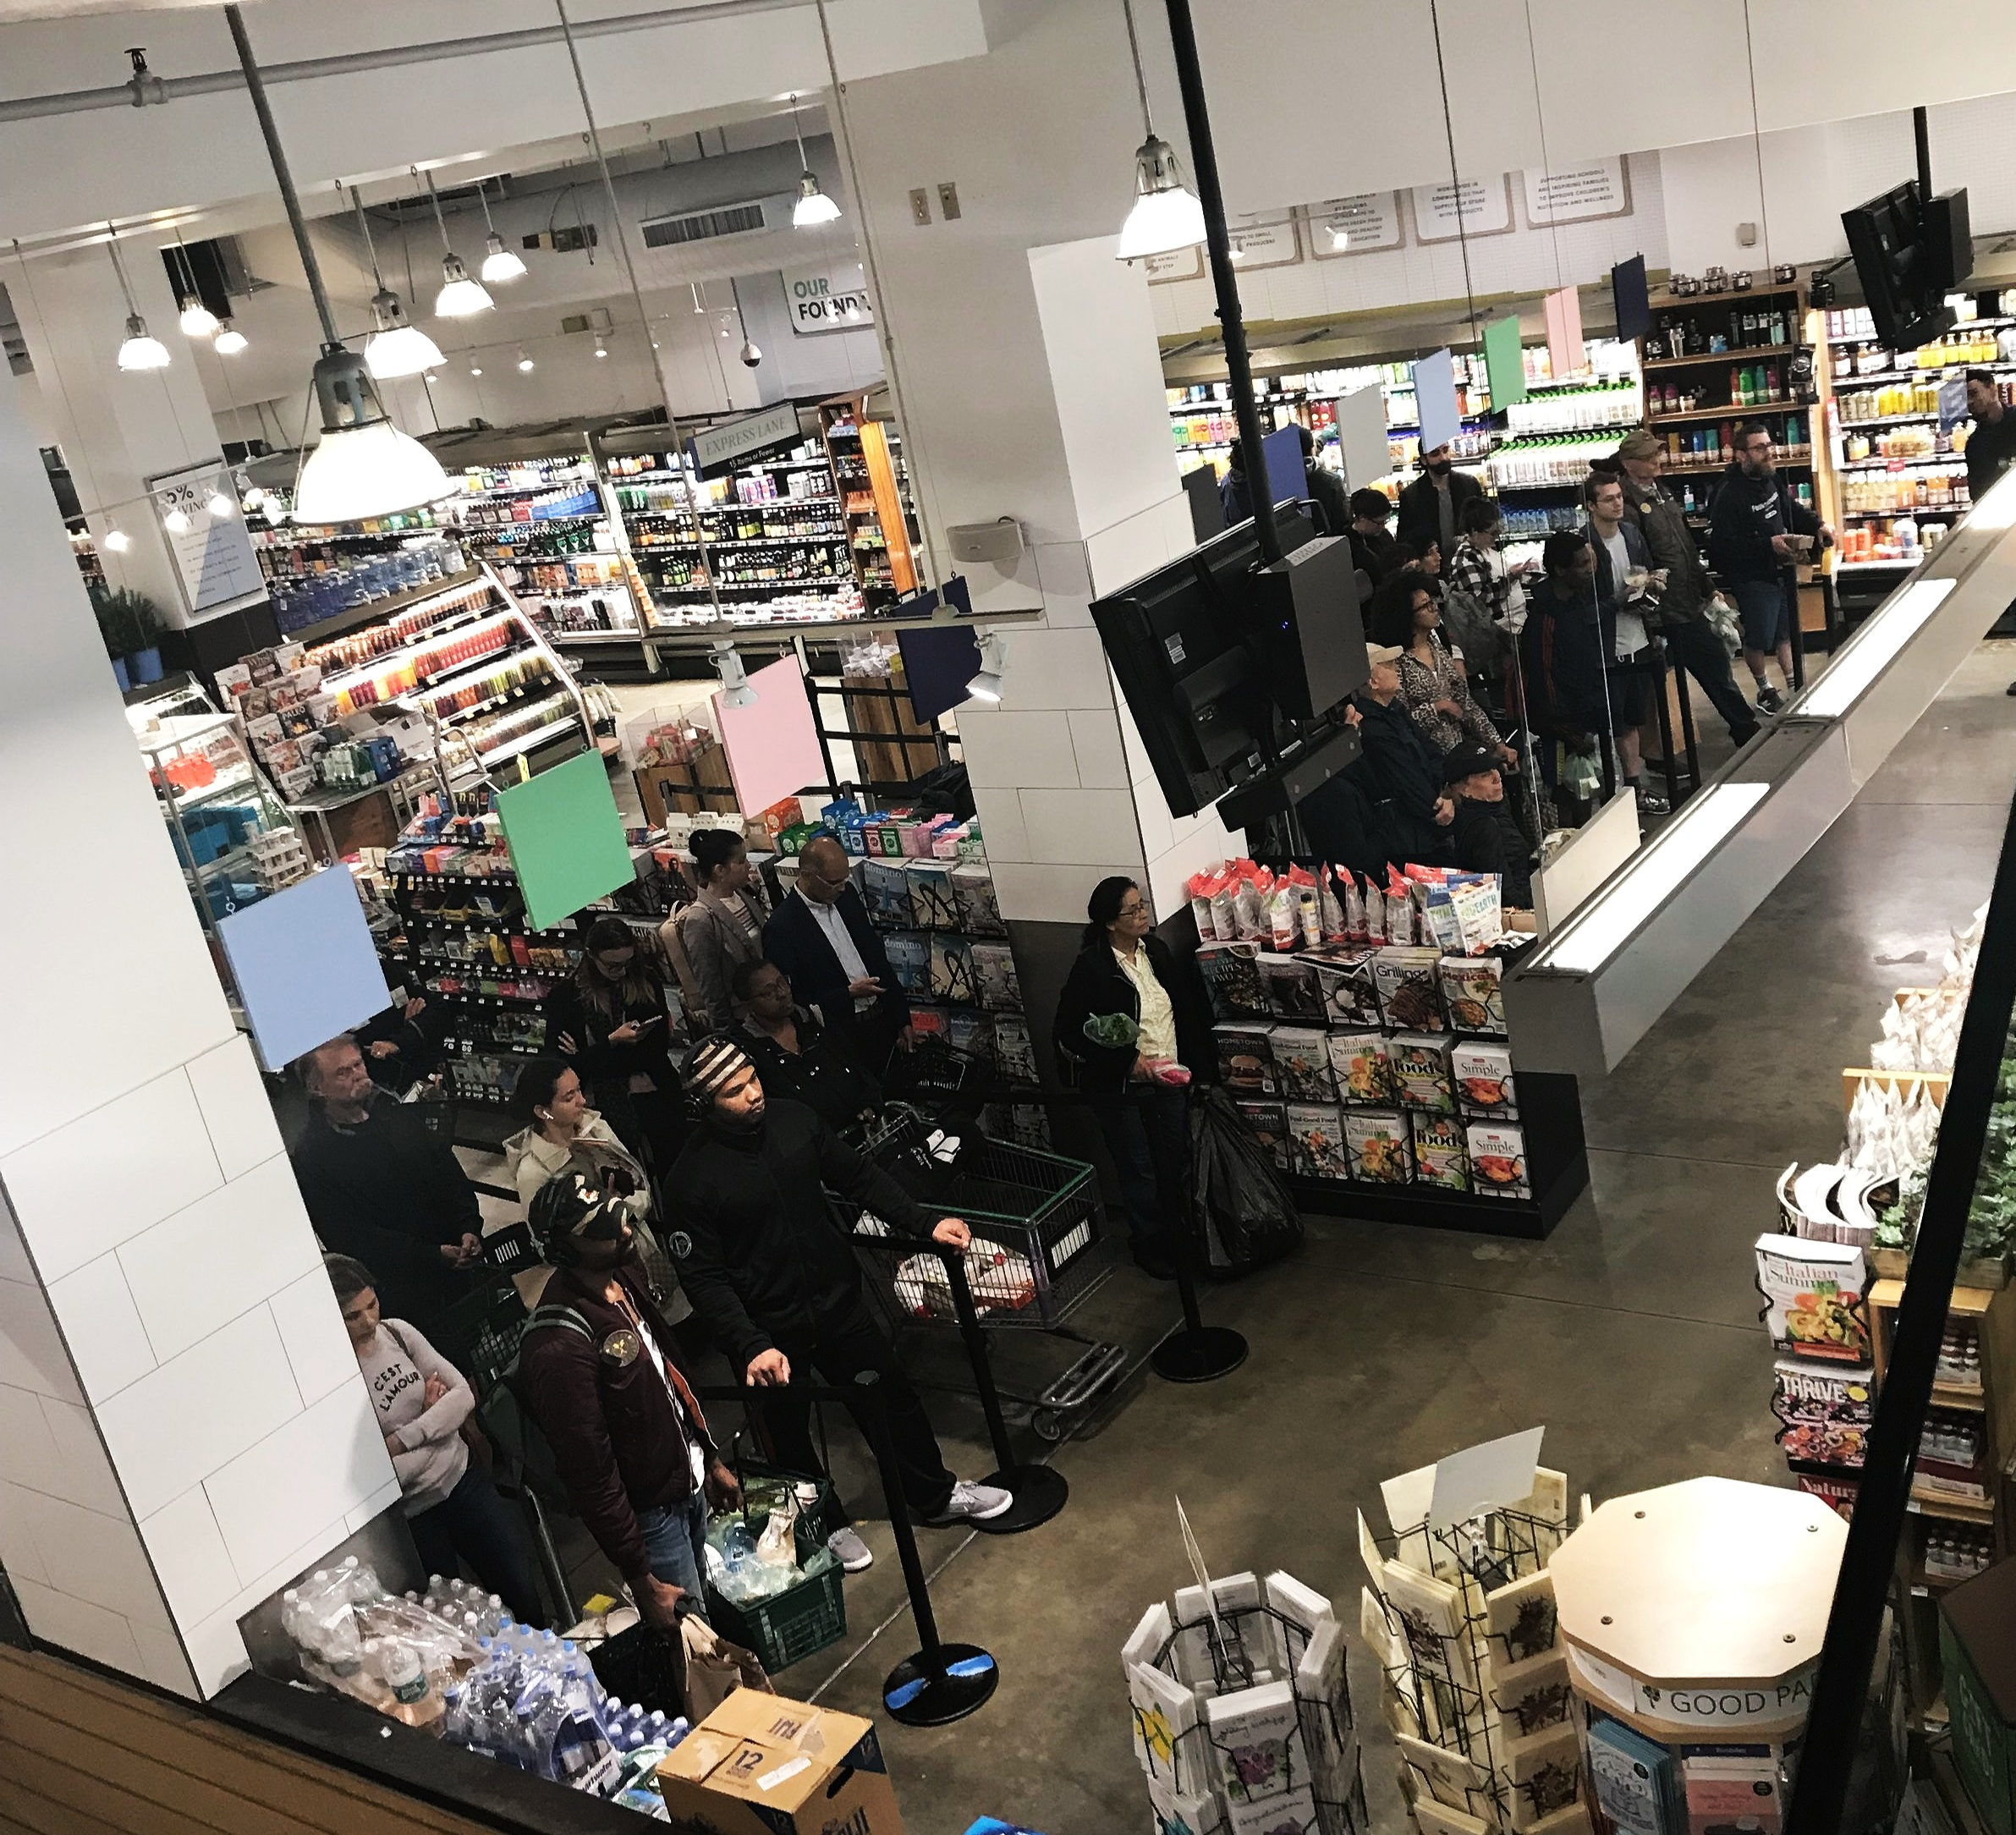 - Live footage of the checkout line at the Whole Foods Union Square Location Pure Chaos!